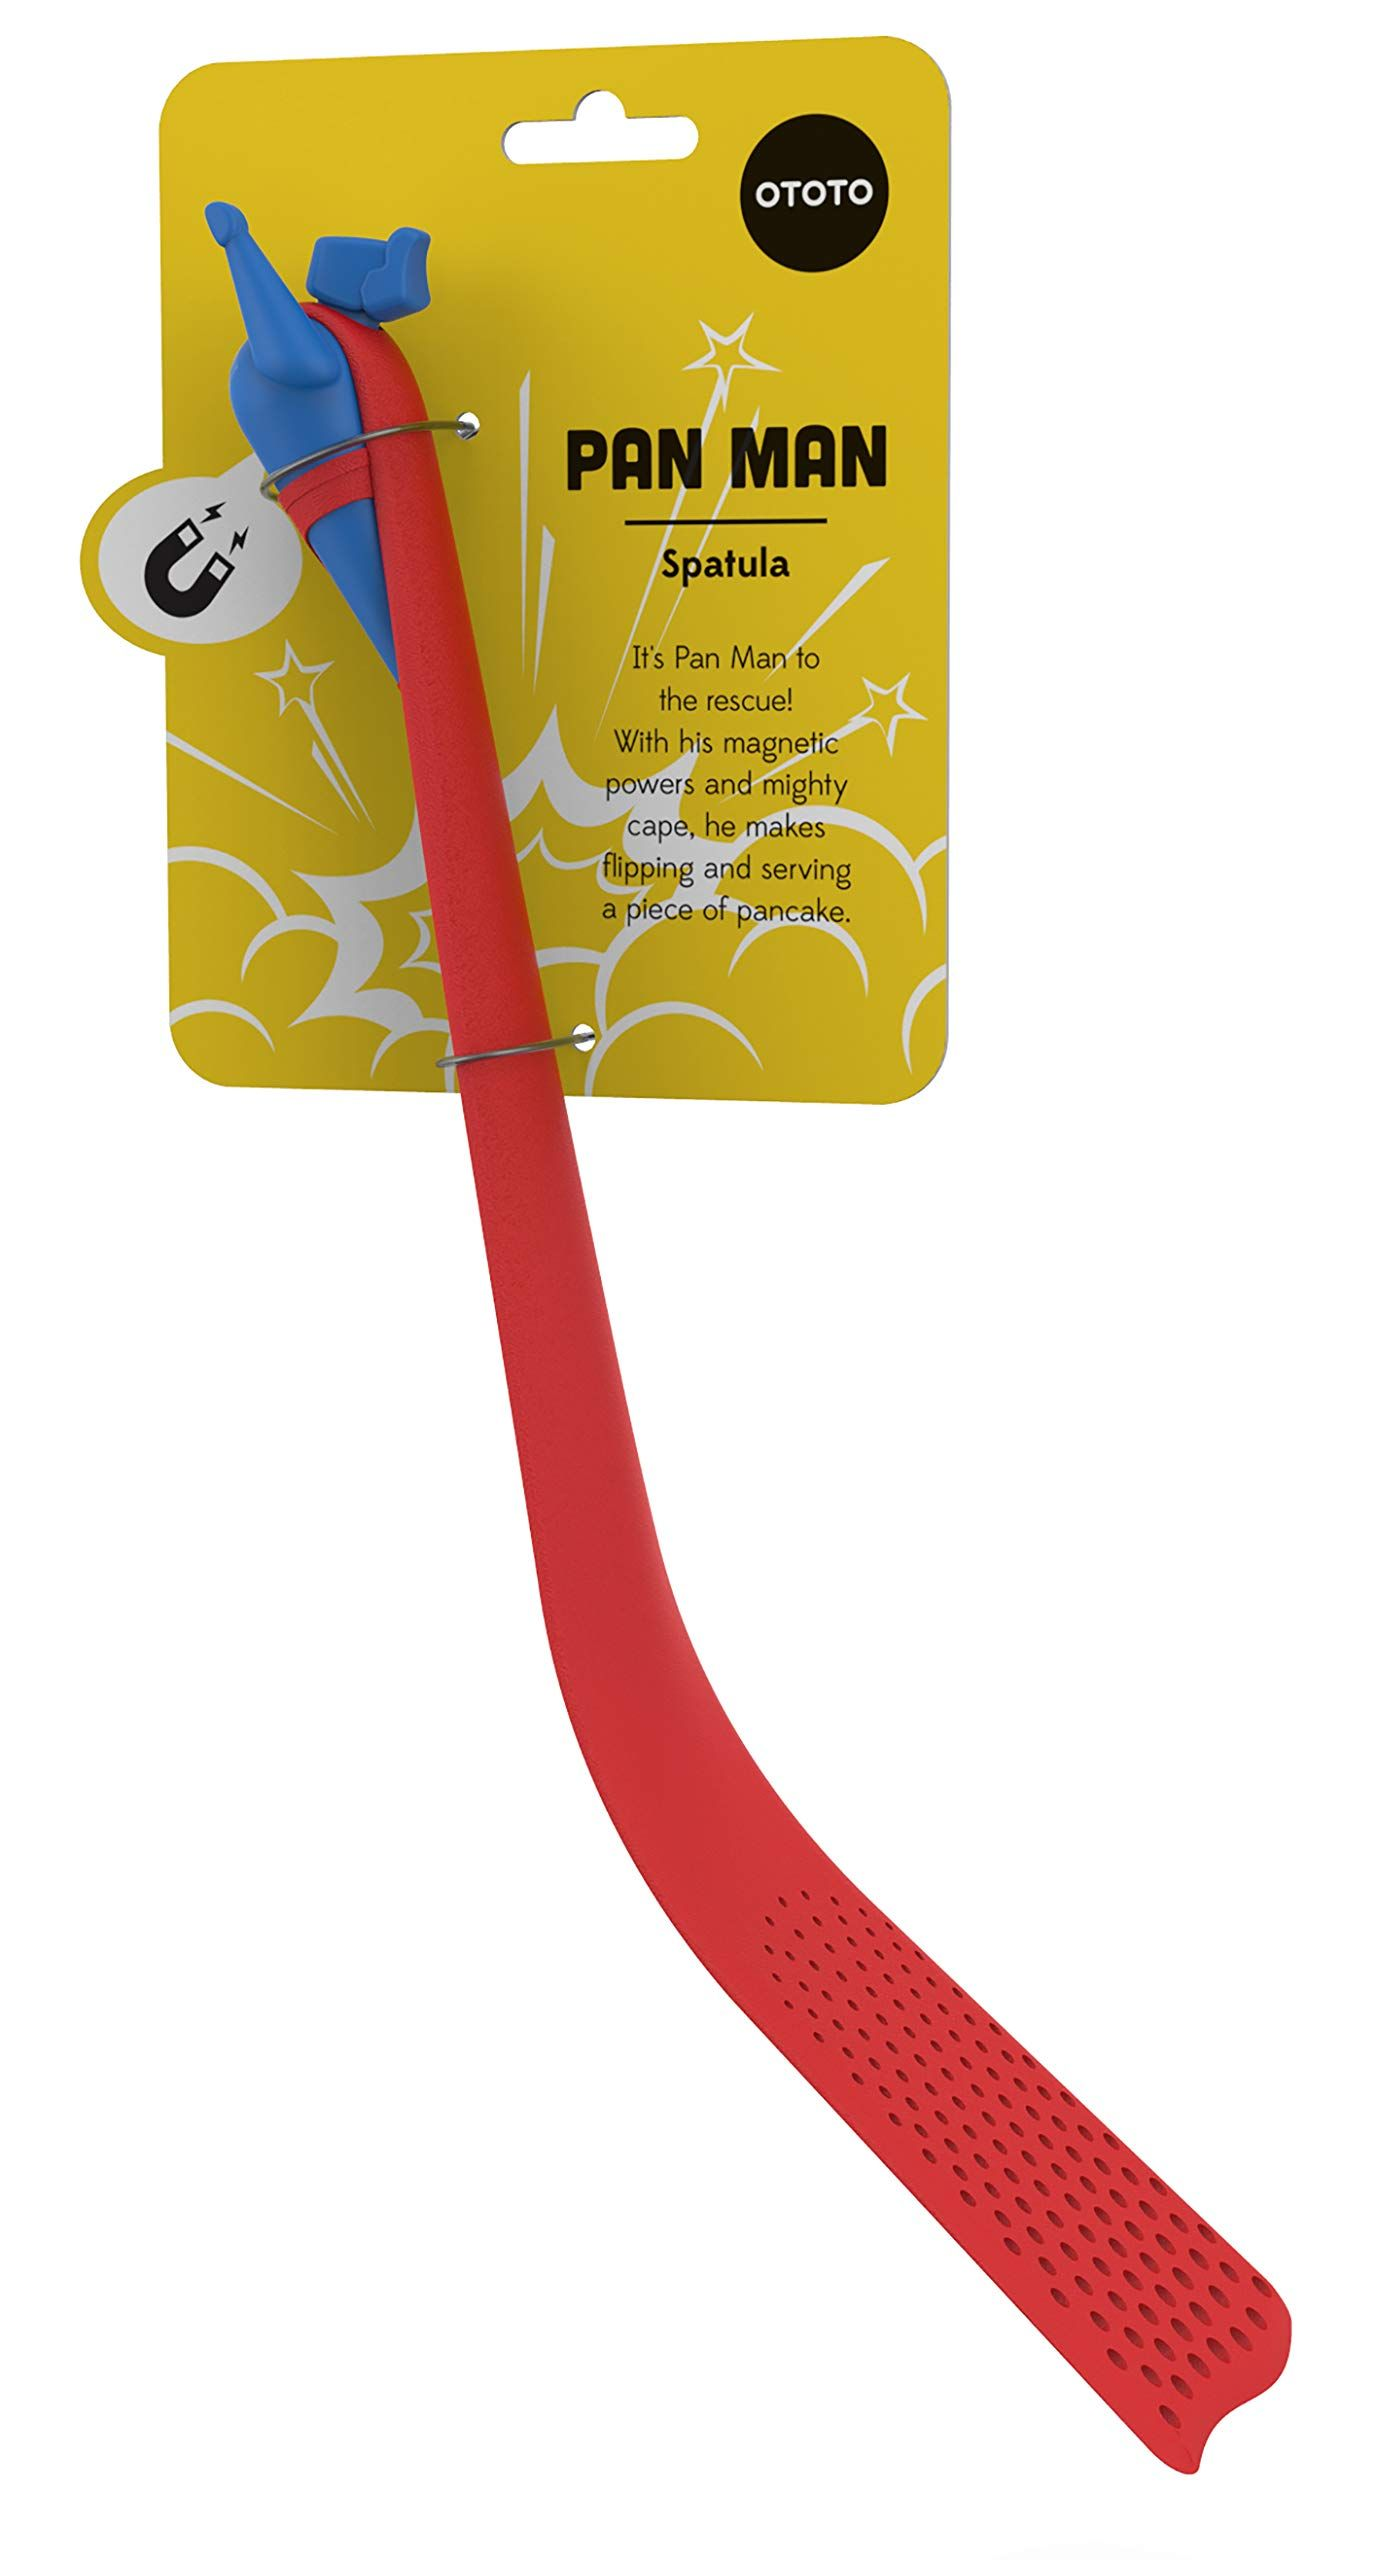 Pan Man Spatula By Ototo Red And Blue You Can Get